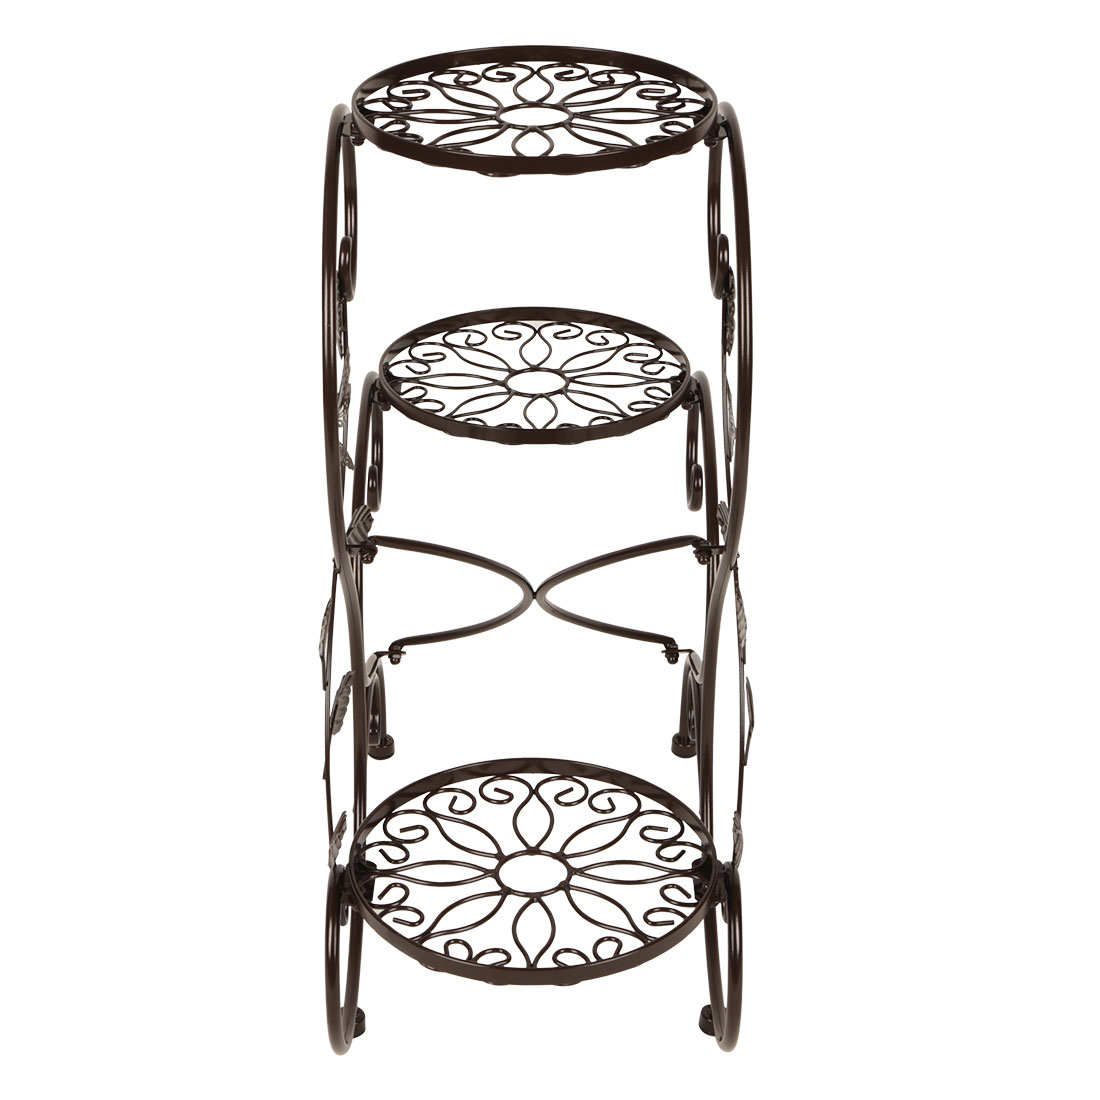 3 tier metal plant stand flower pot display rack holder for Decoration stand